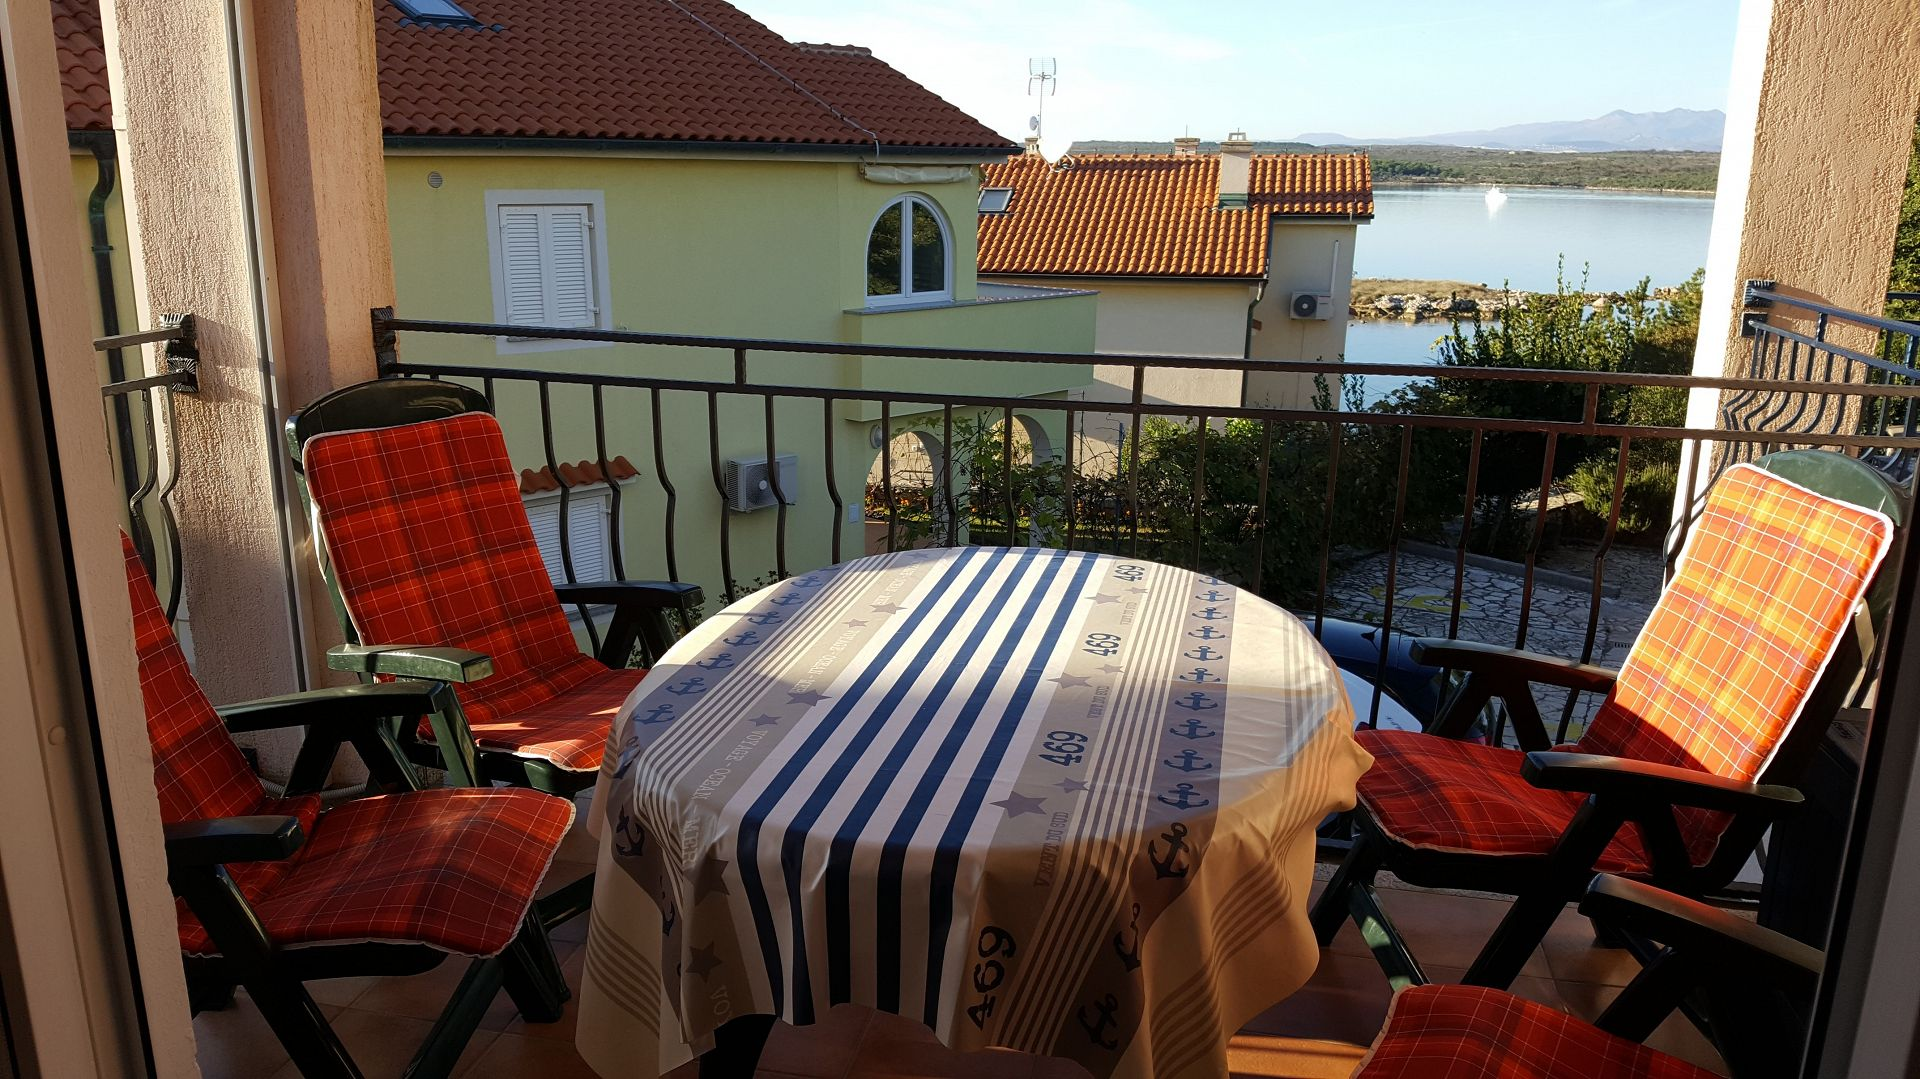 Dija - Klimno - Apartments Croatia